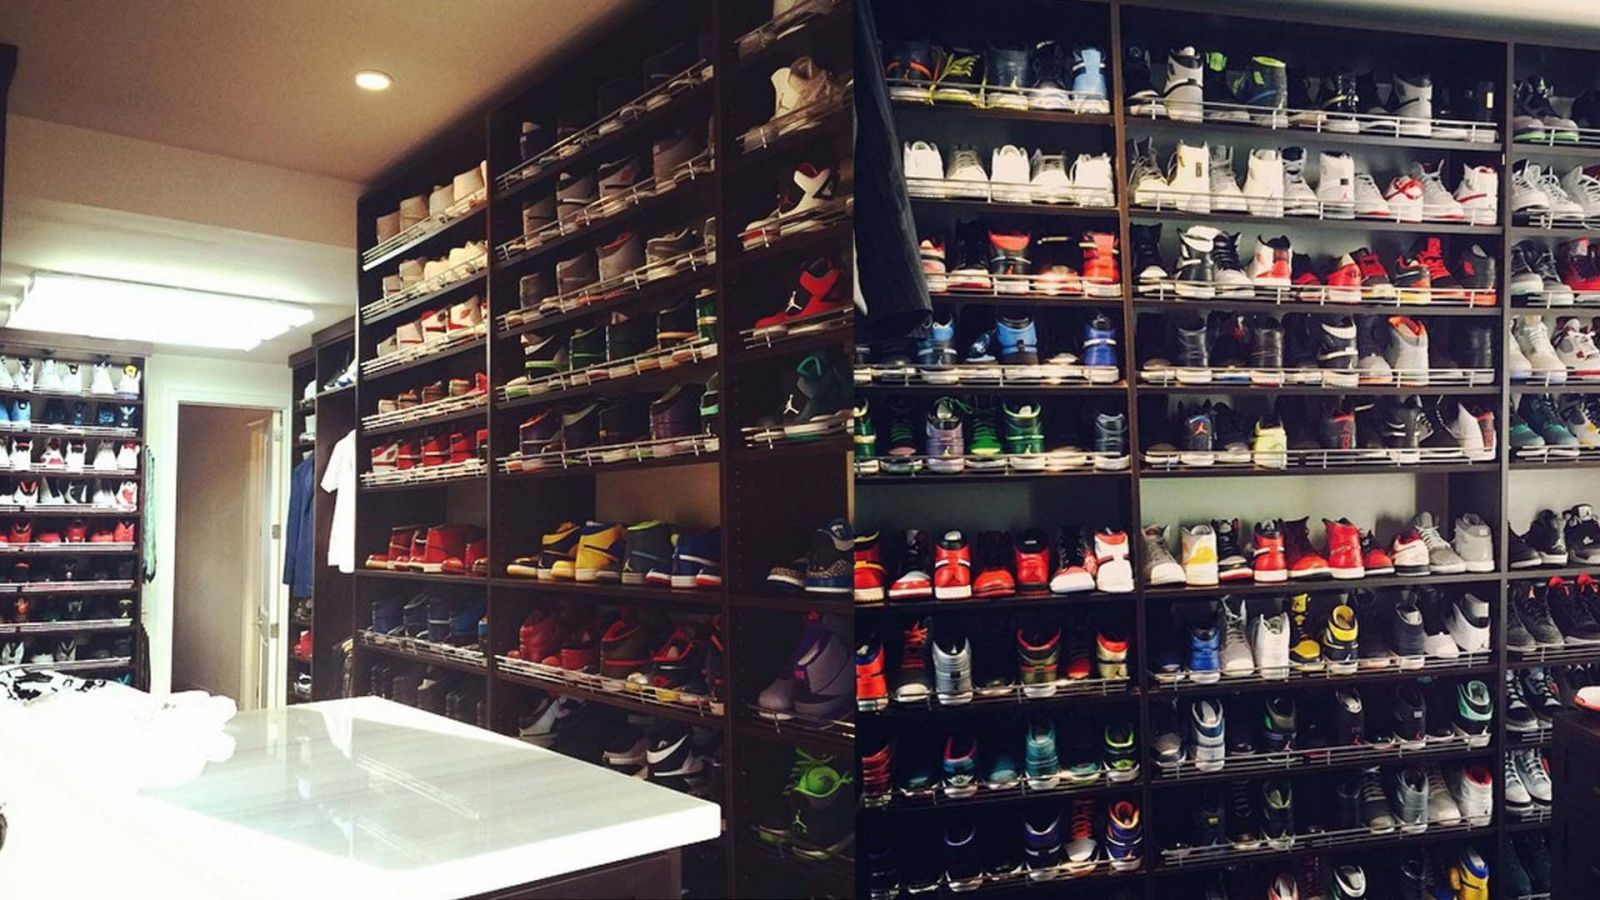 Superior Ask The SC Forum: The Best Way To Store Sneakers